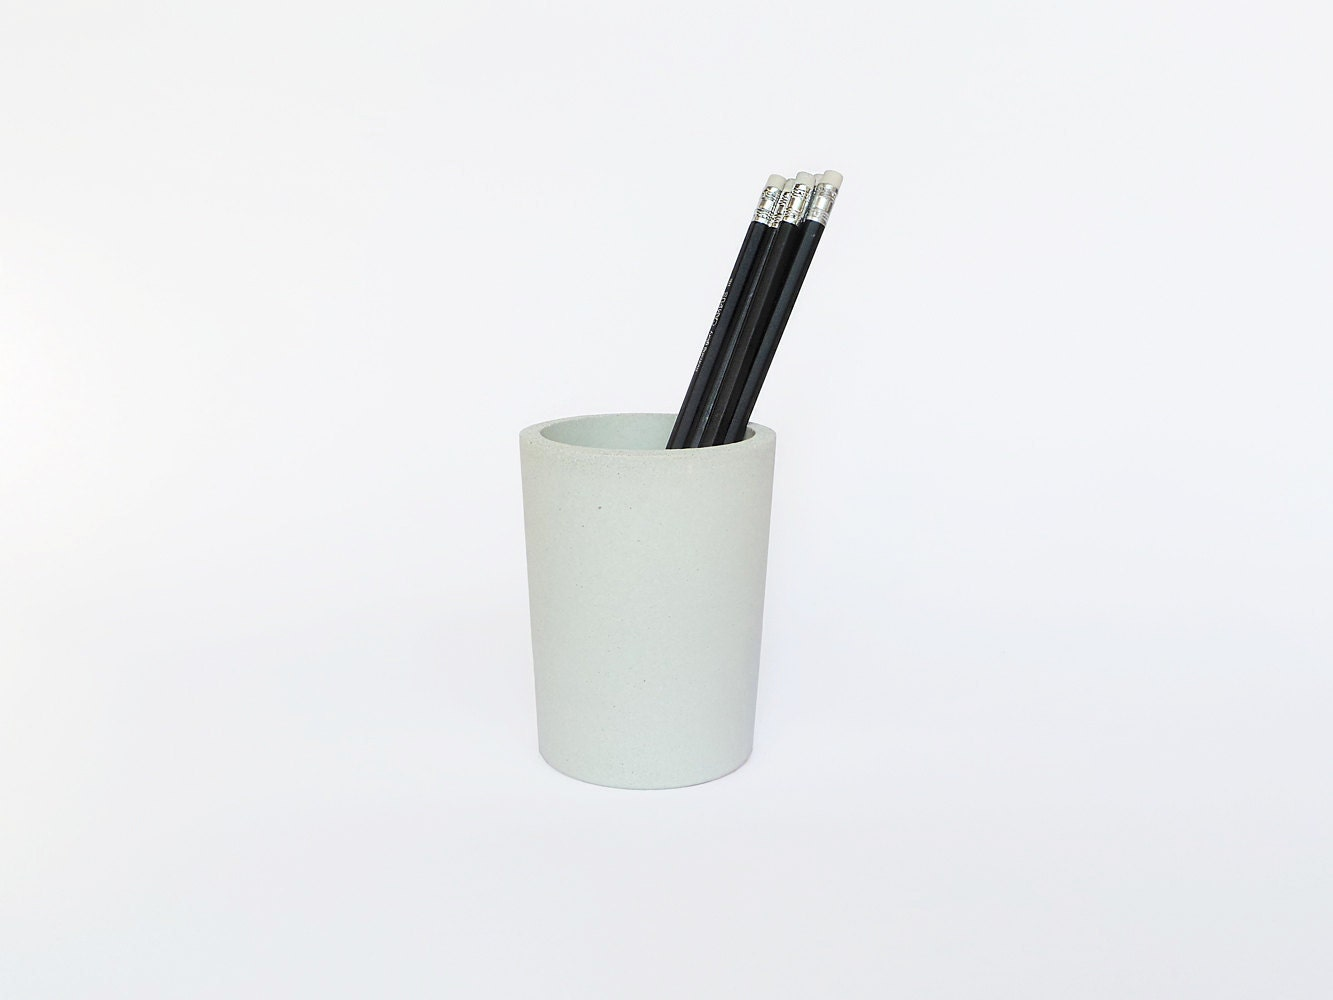 White Concrete Pencil Holder Pencil Cup Pencil Holder